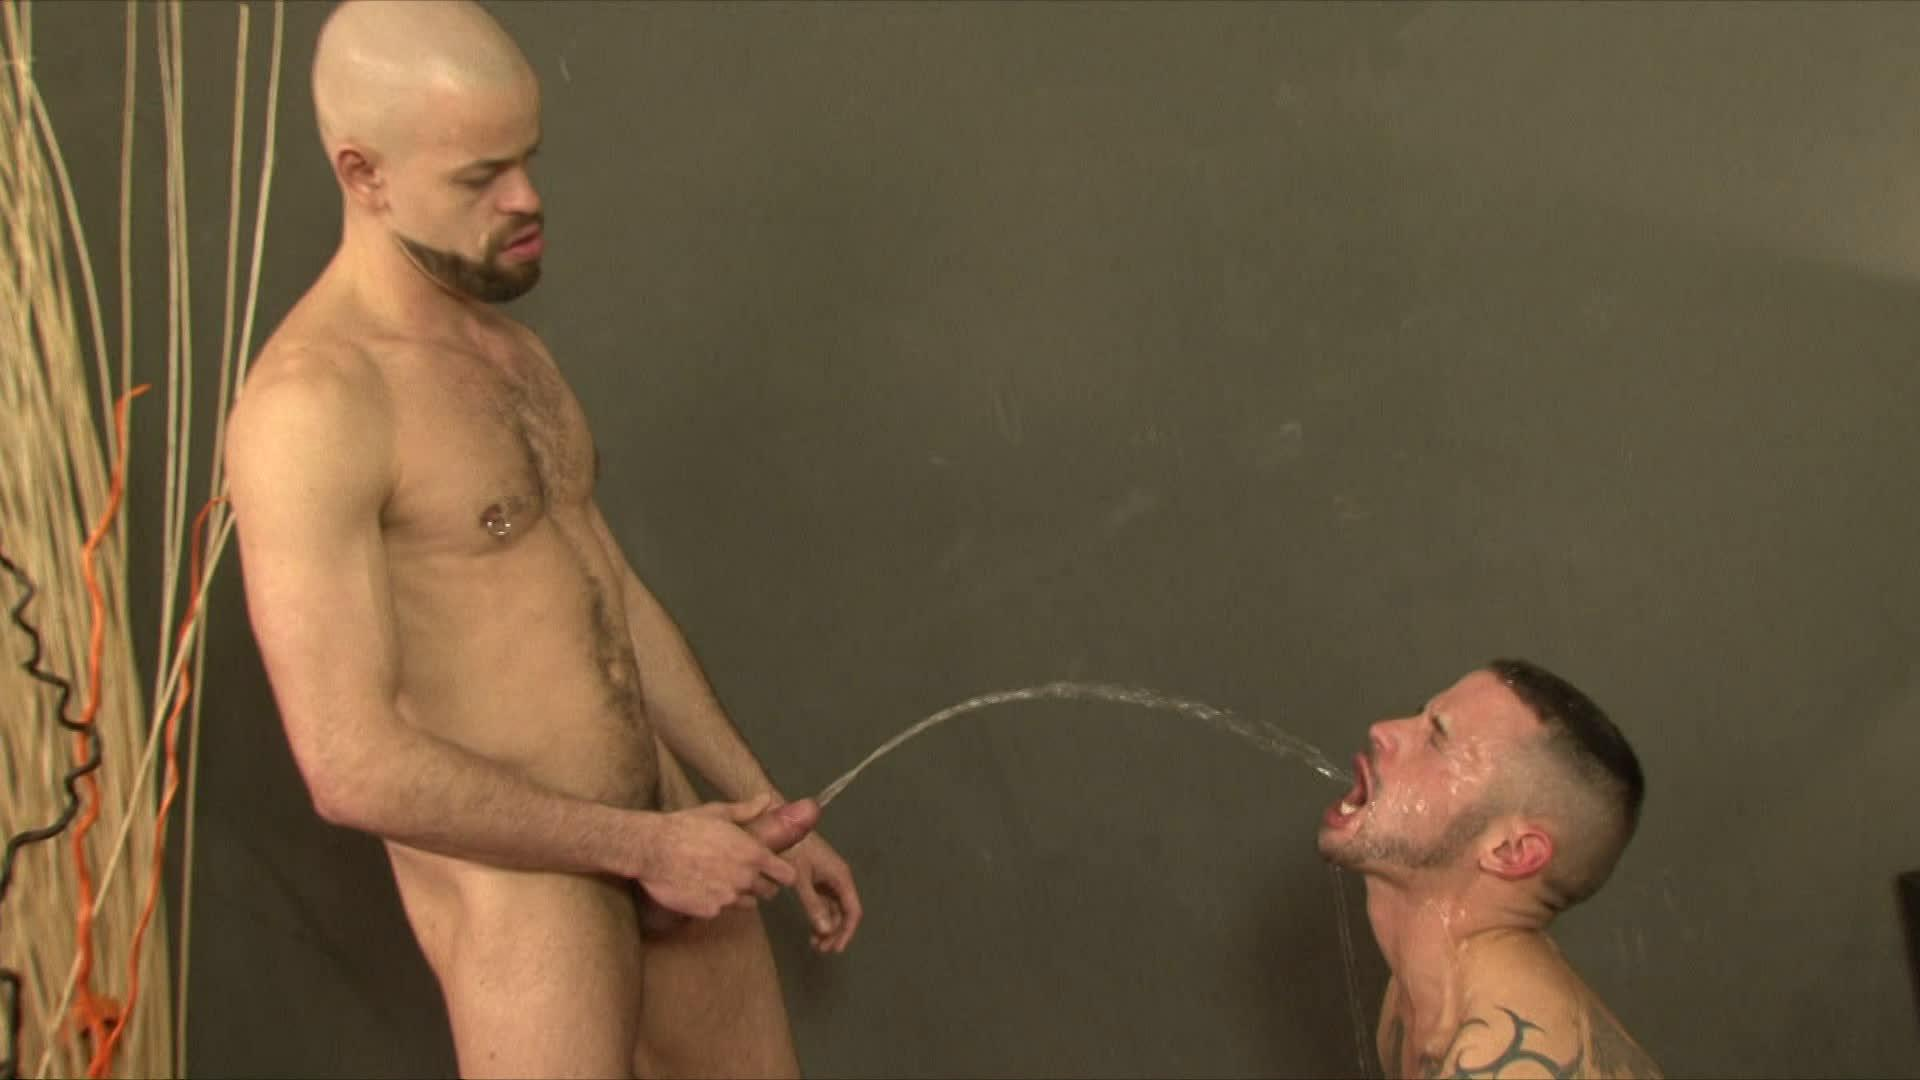 Pissed On Xvideo gay